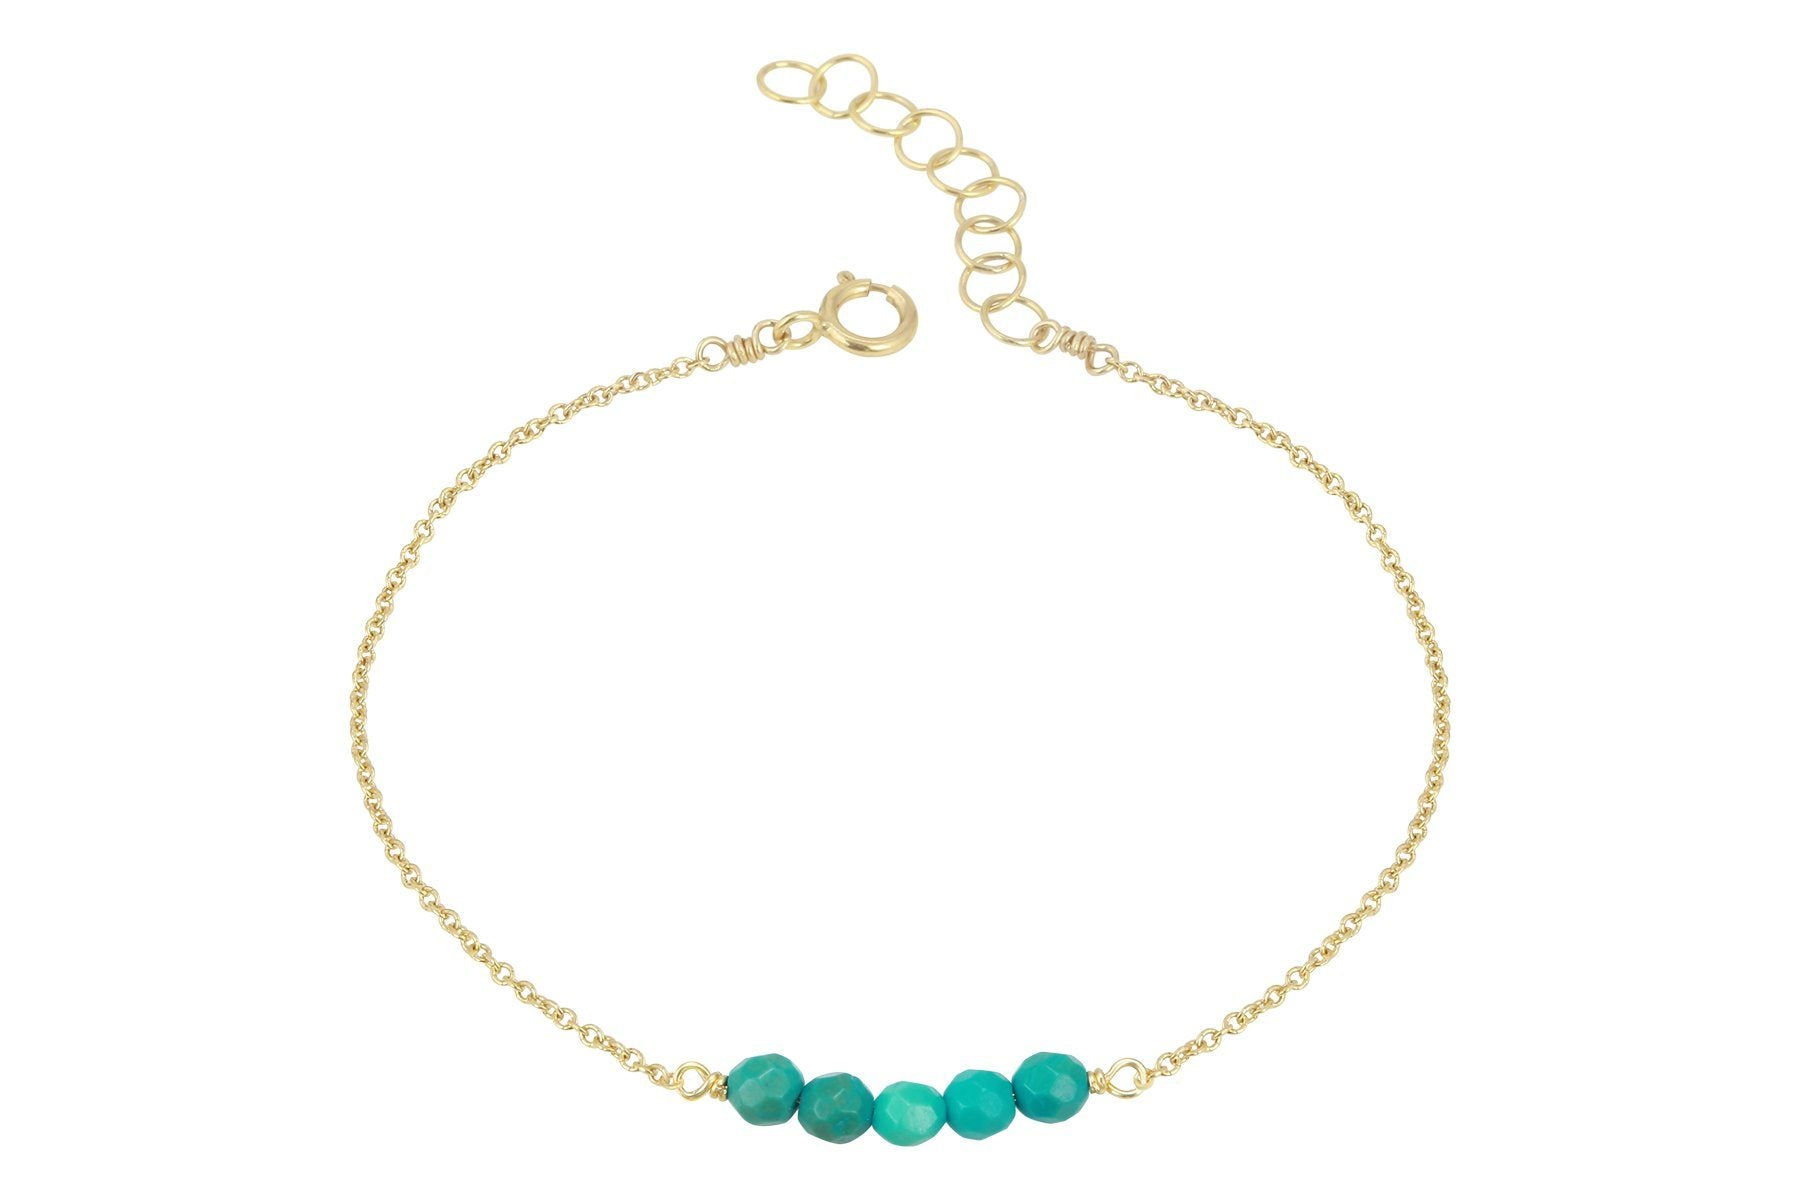 Elements- Turquoise 5 stone gold filled adjustable chain bracelet